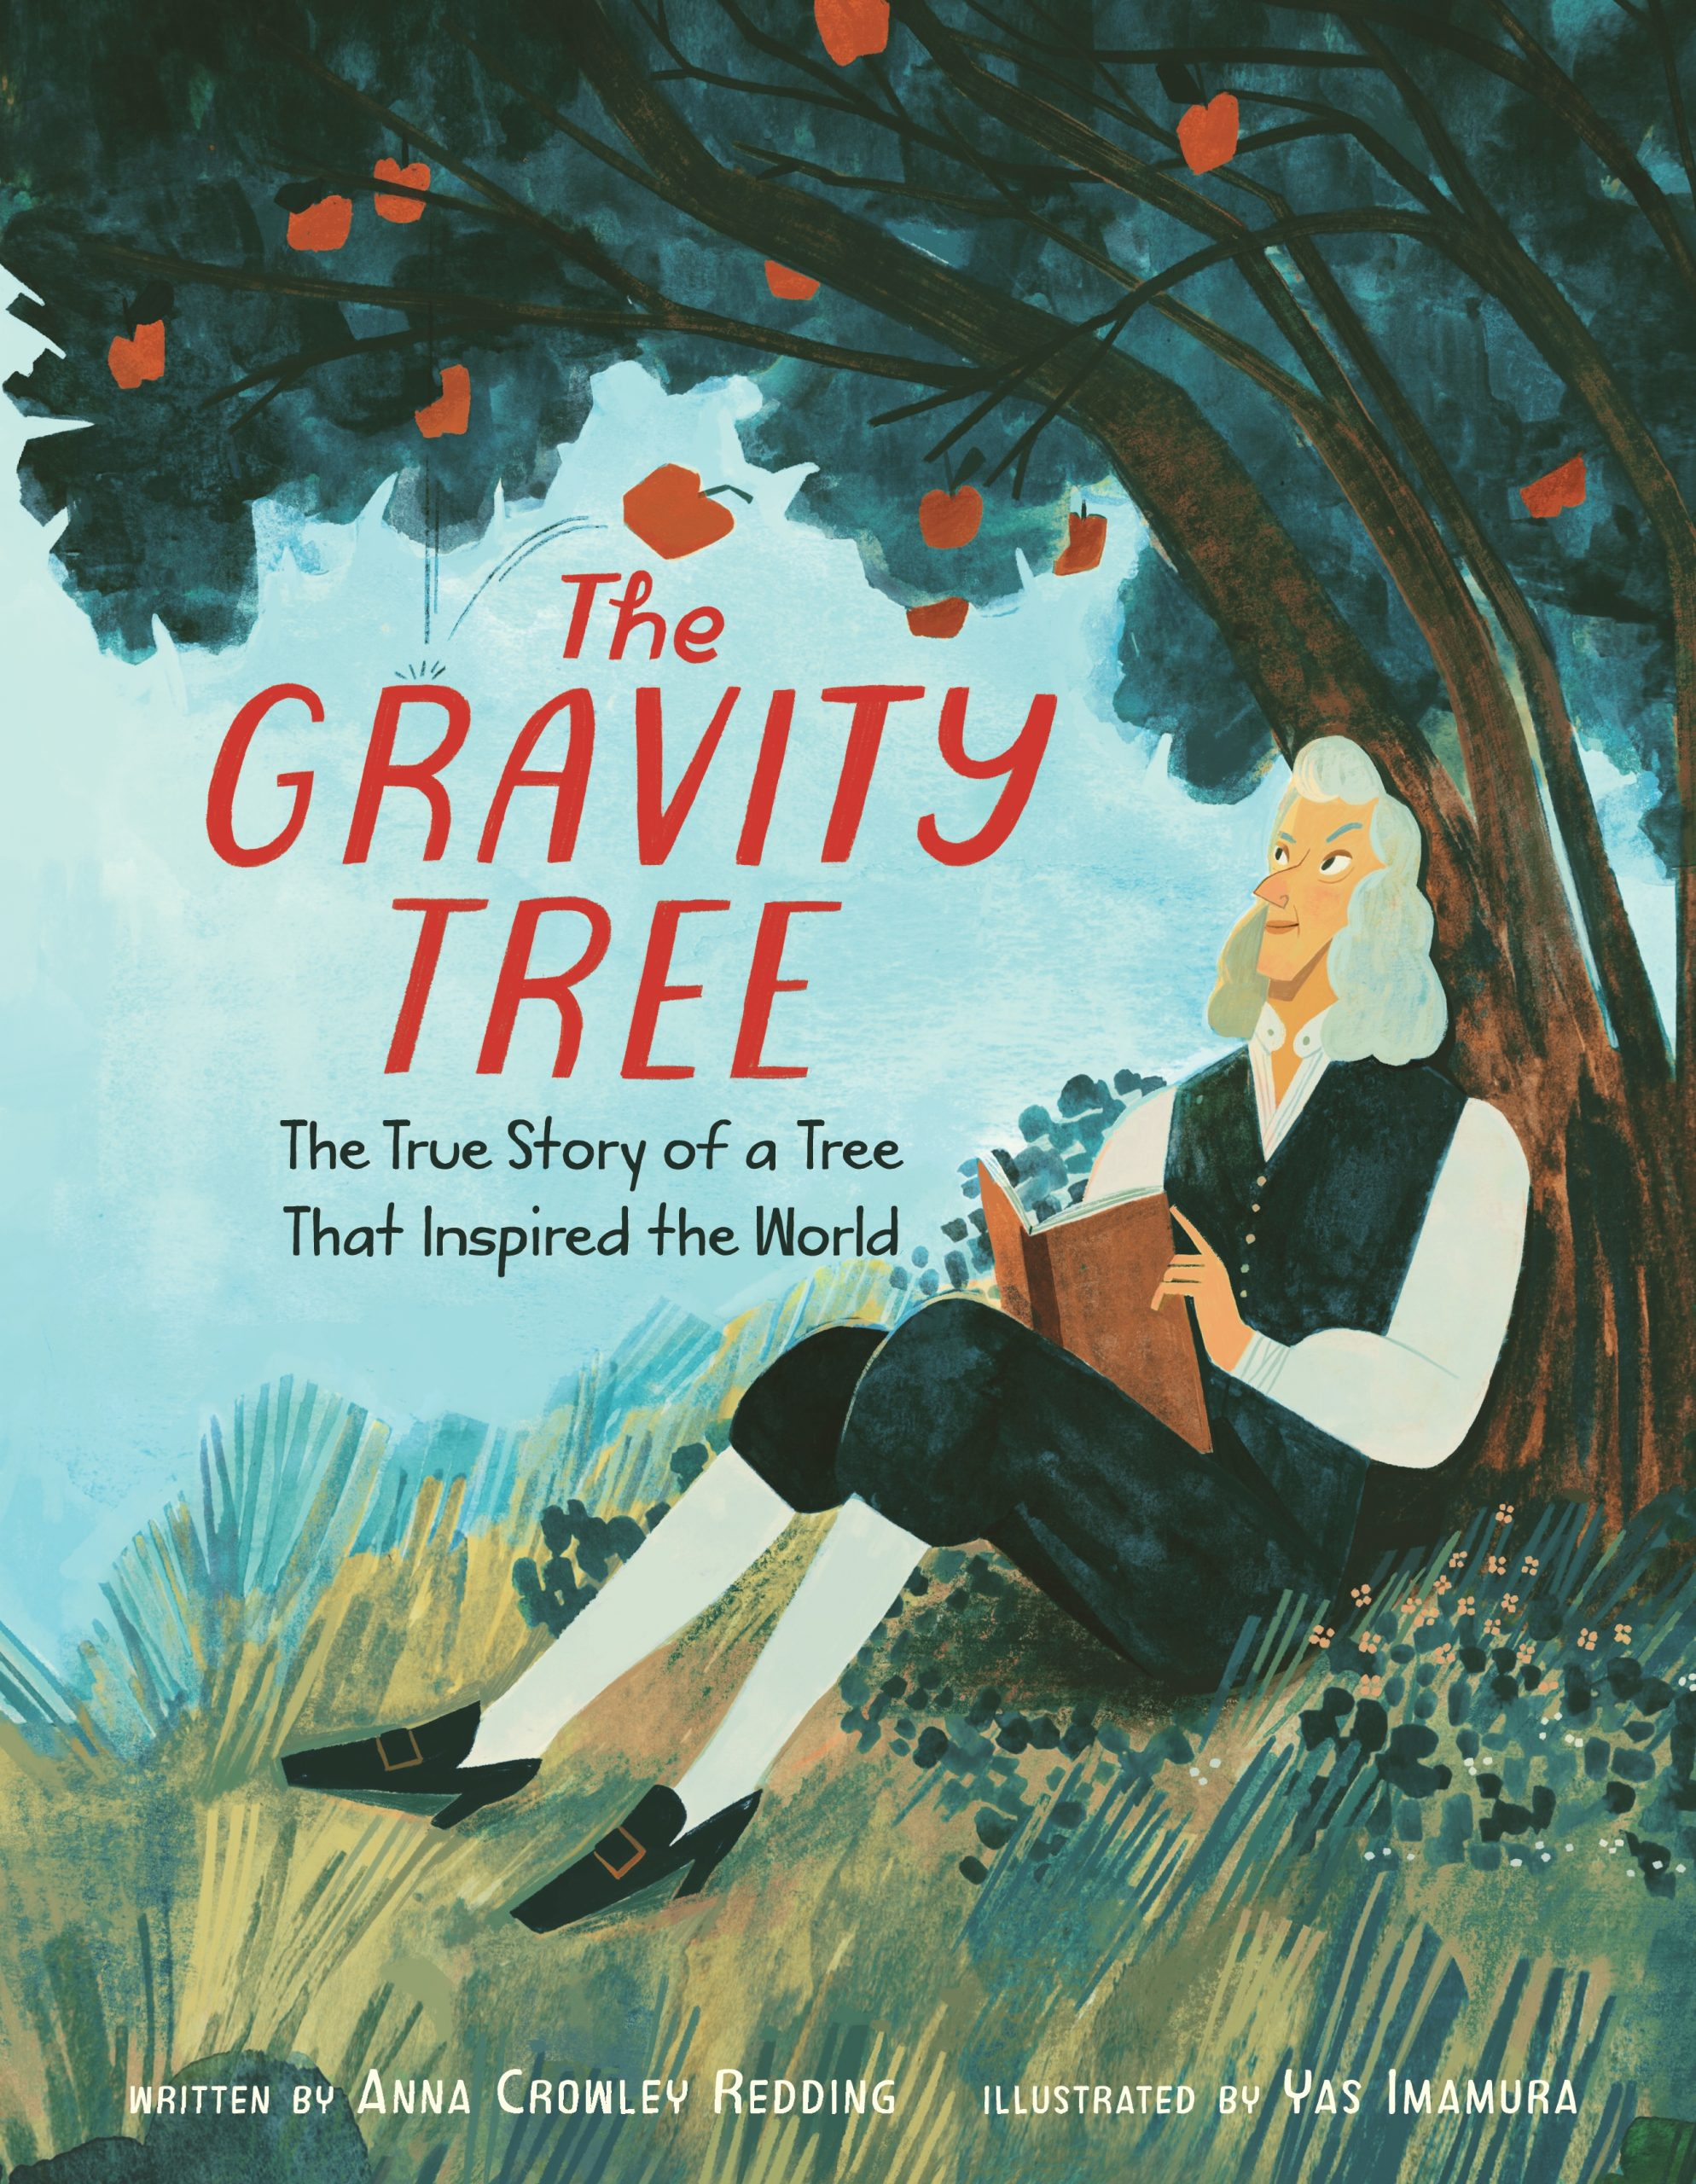 The Gravity Tree: True Story of a Tree That Inspired the World